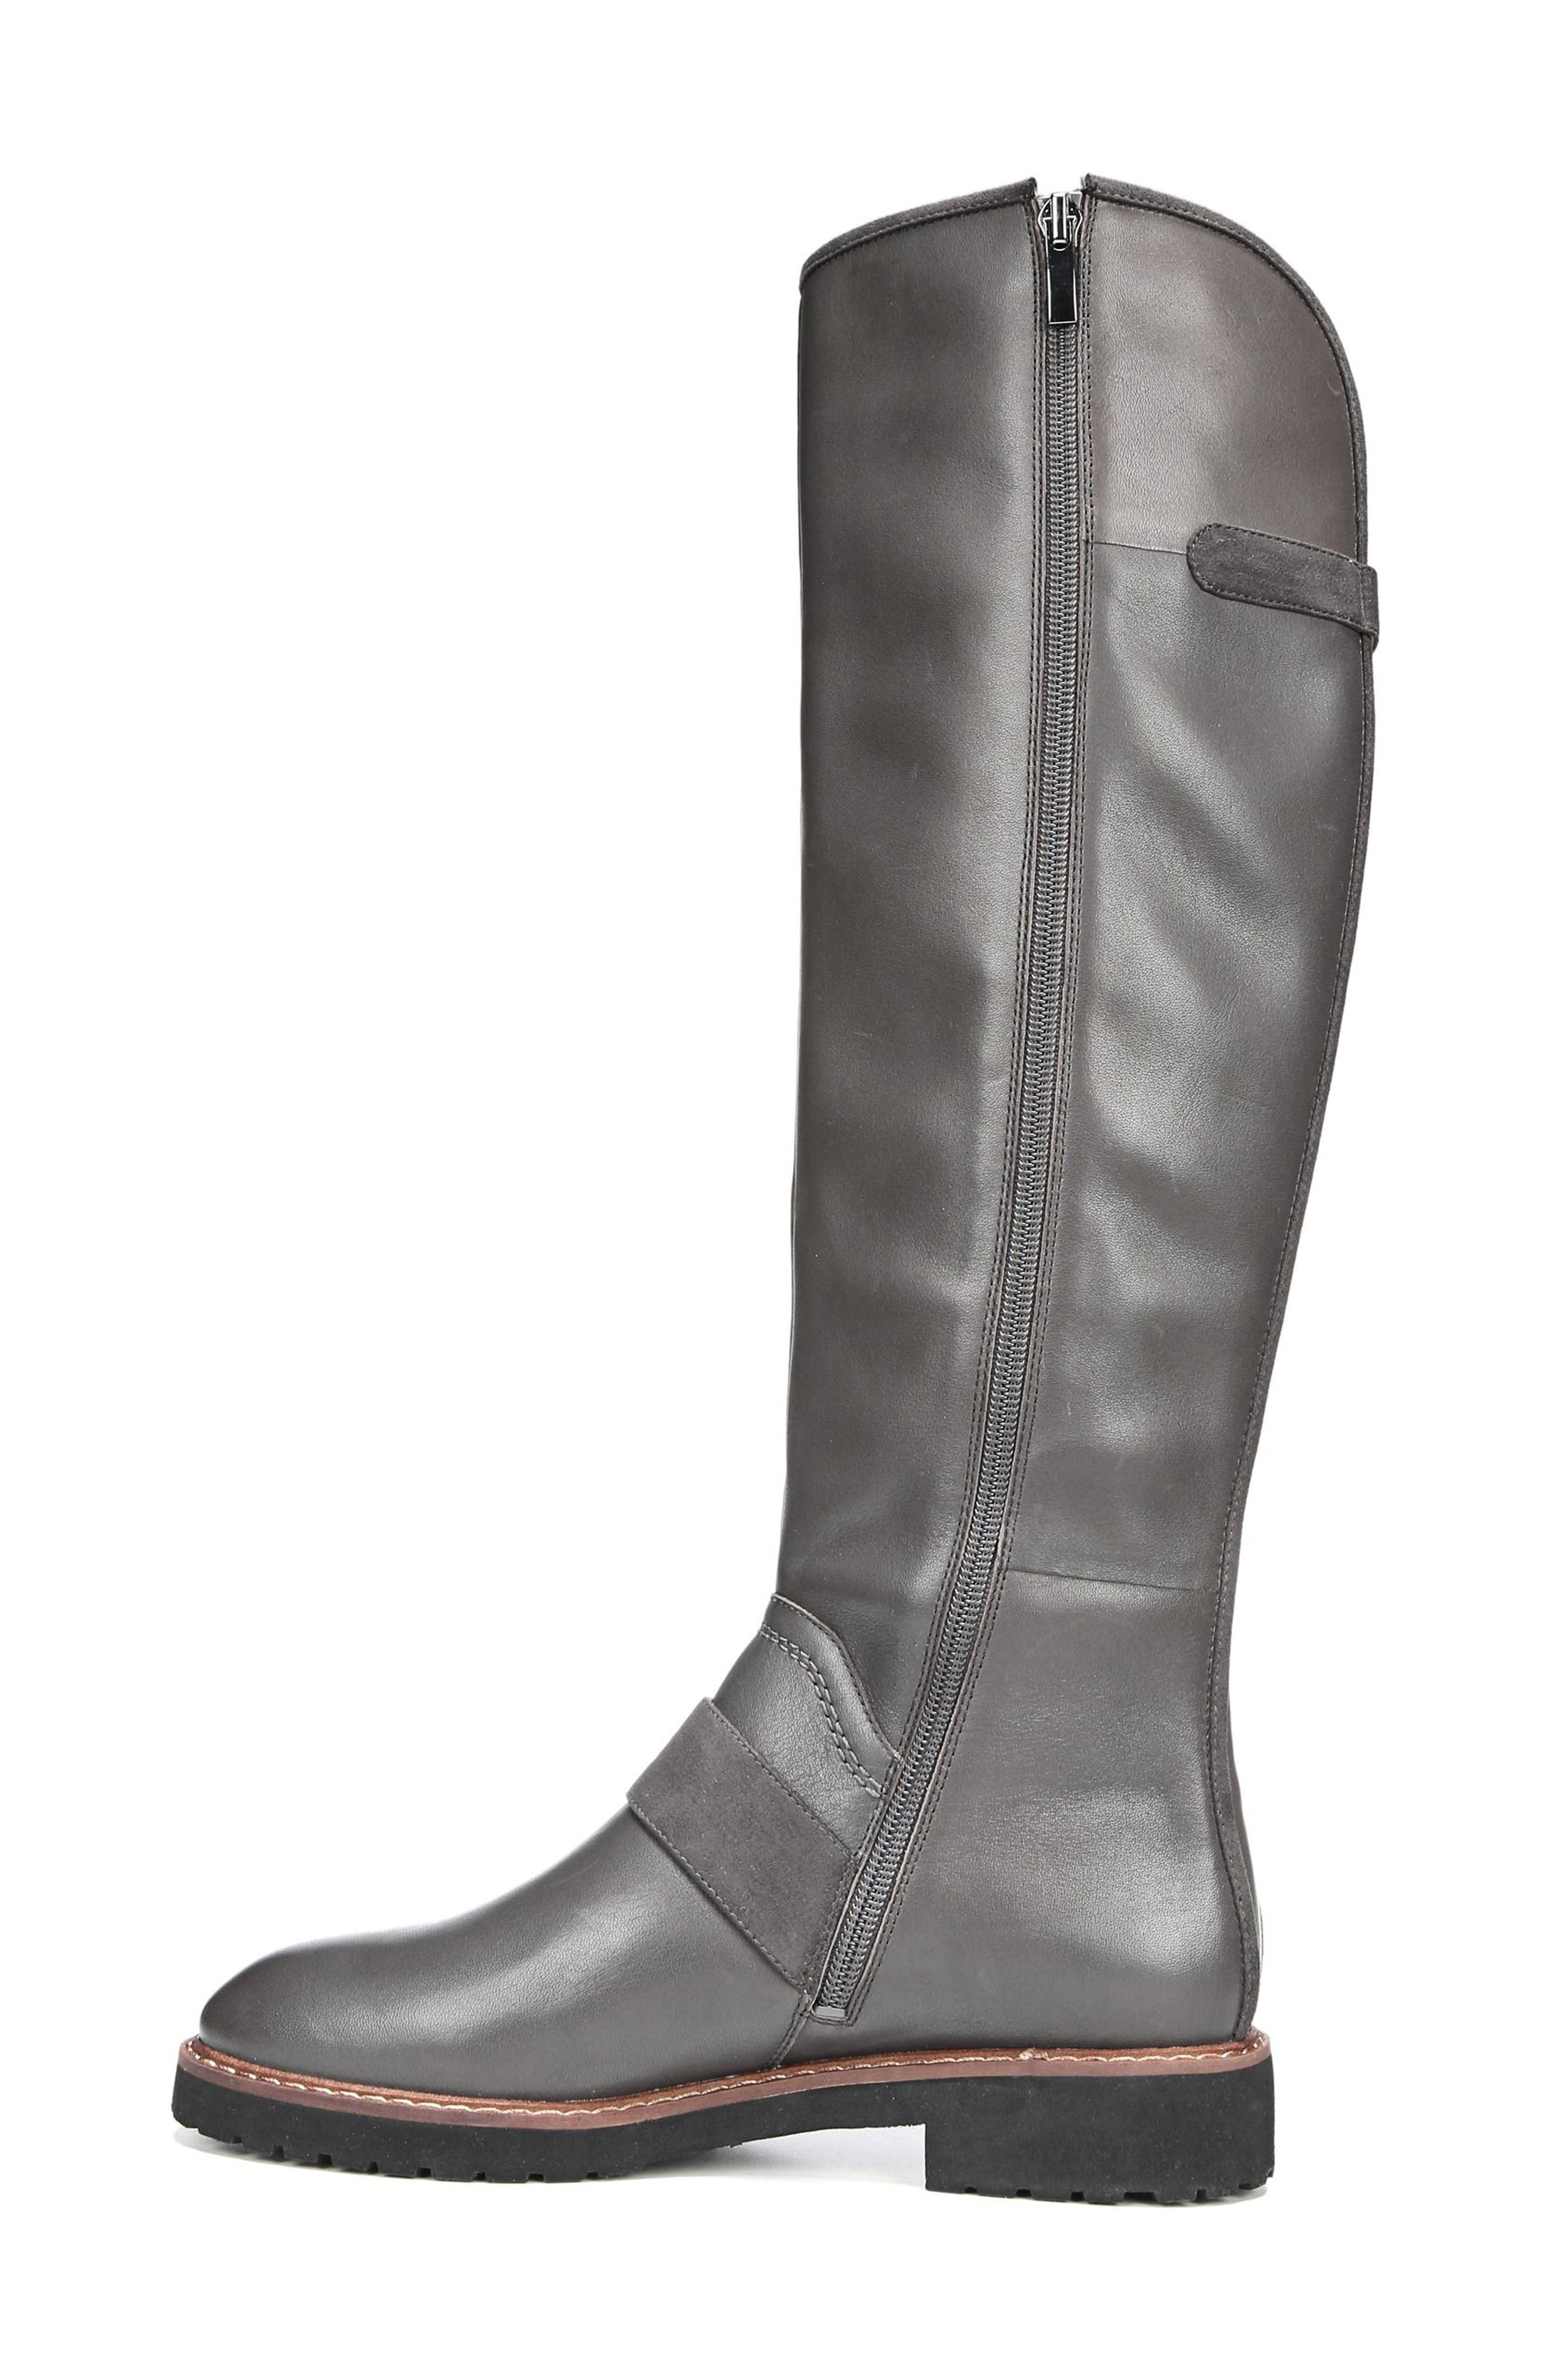 Cutler Riding Boot,                             Alternate thumbnail 2, color,                             Peat Leather